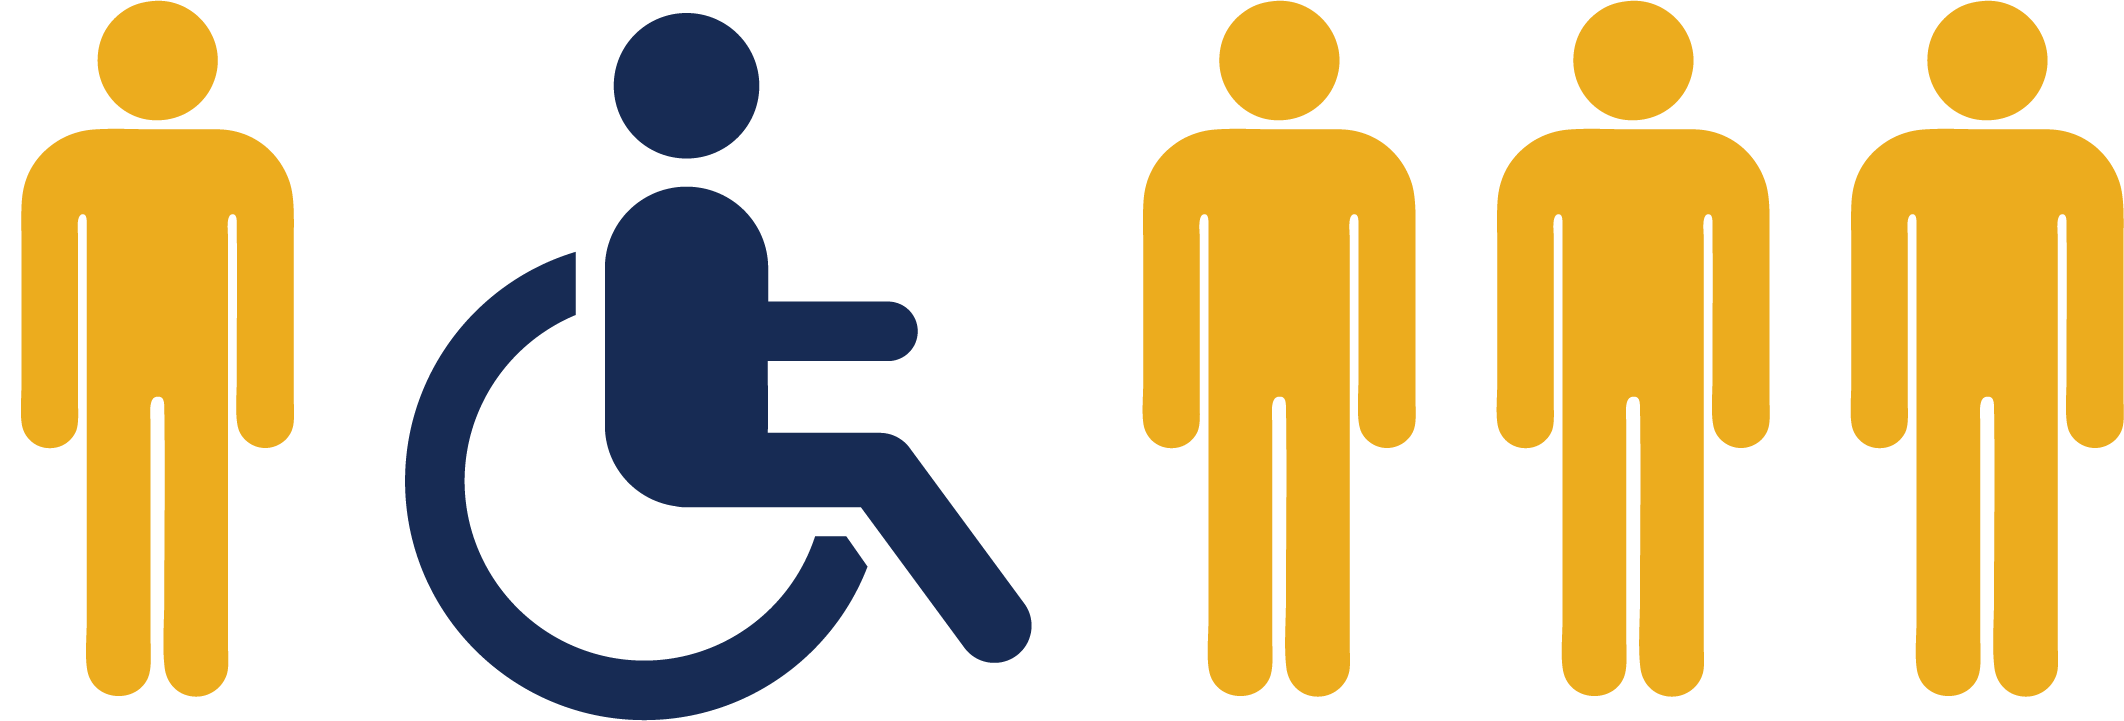 a graphic of four human silhouettes standing and one is using a wheelchair